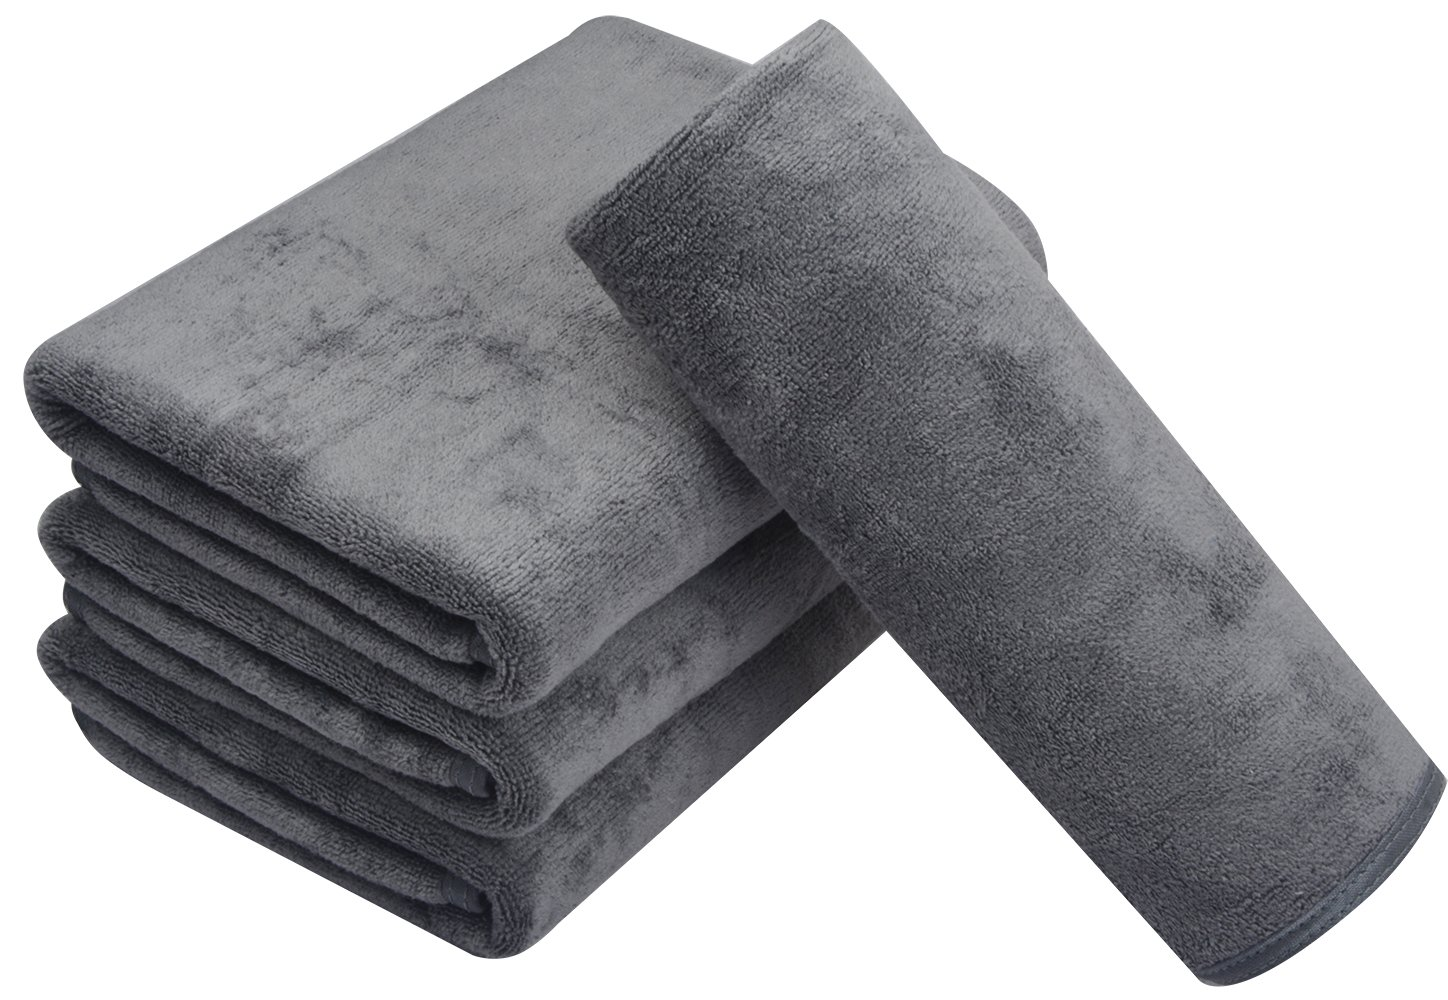 KinHwa Microfiber Hand Towels for Bathroom - Soft and Light-Weight Face Towels Odor Free Wash Towels for Bath, Spa, Gym (Gray, 4)